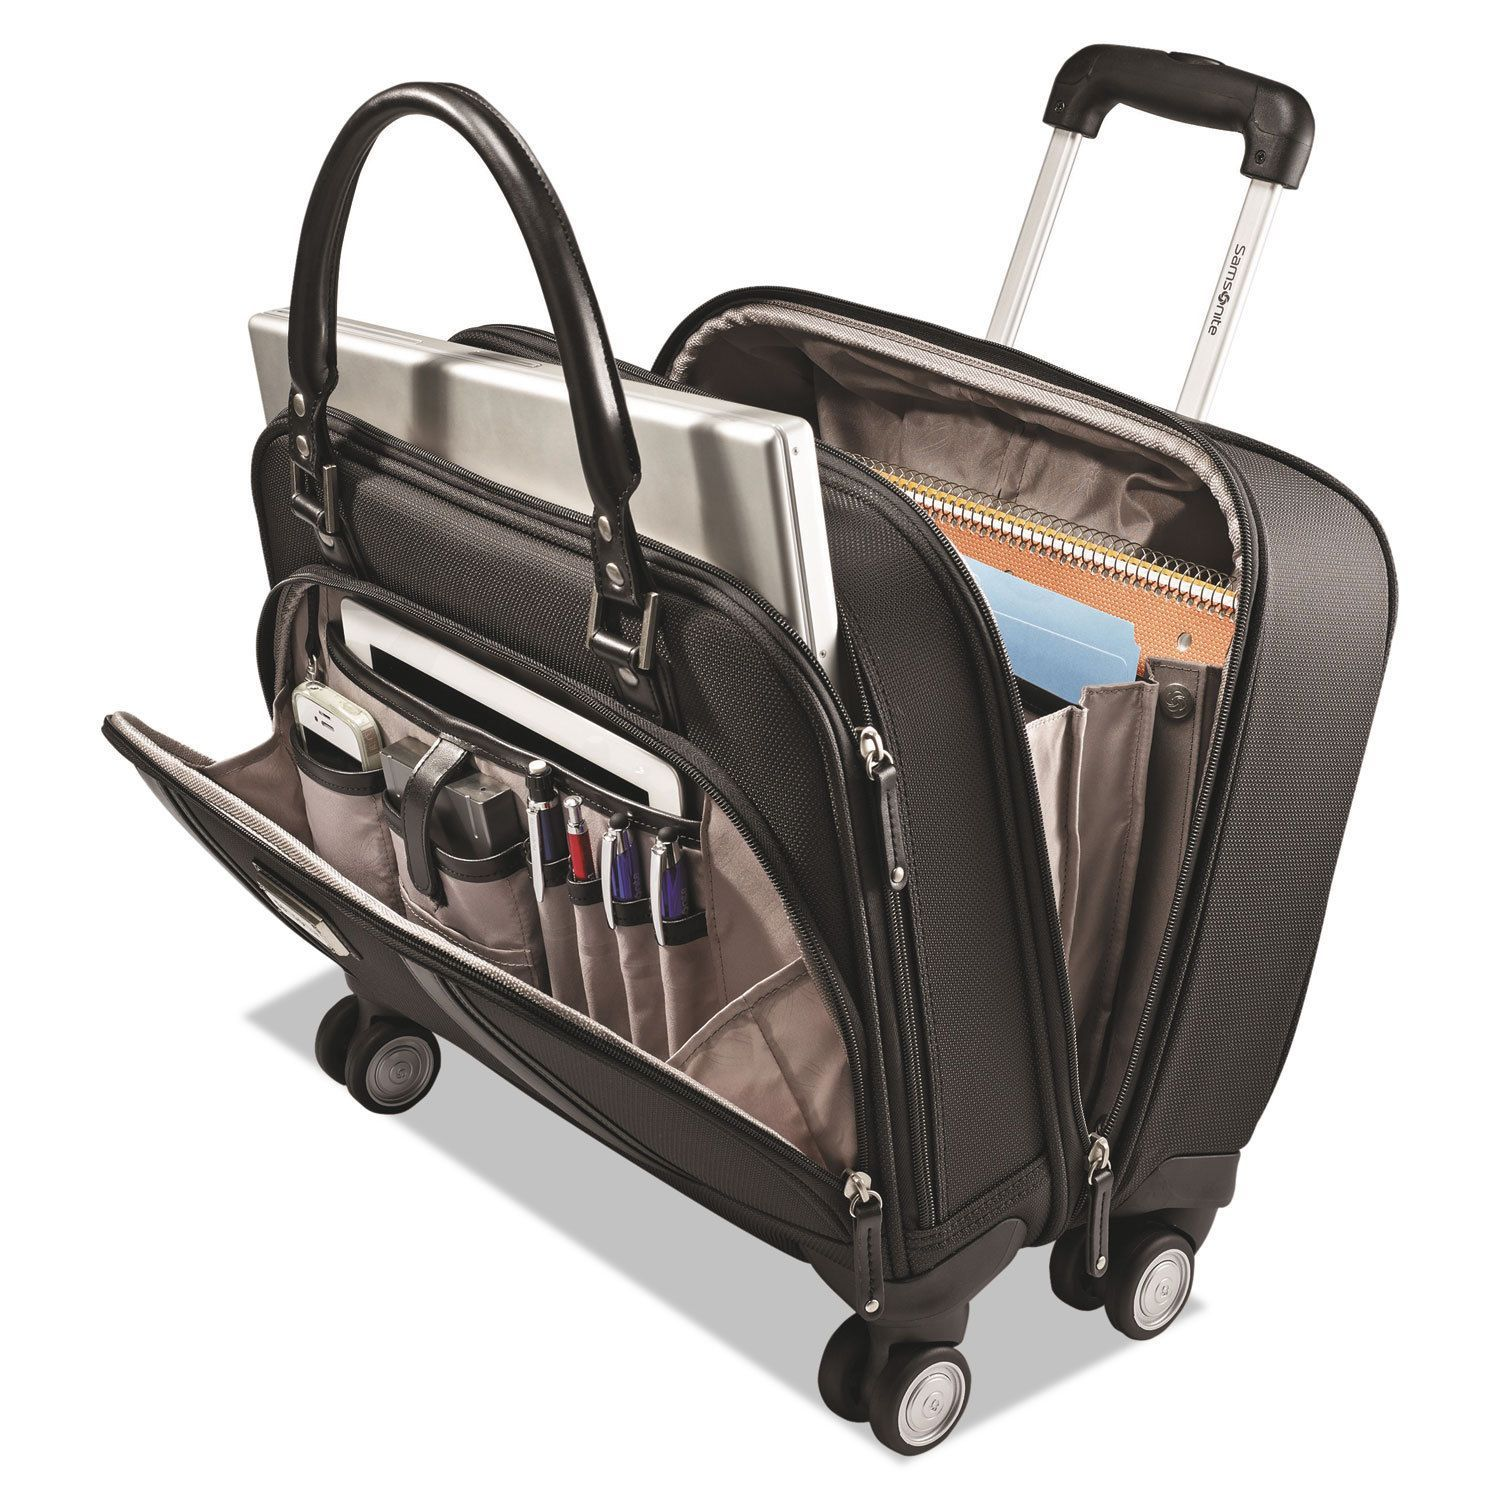 Samsonite Women S Rolling Mobile Office 16 1 2 X 8 13